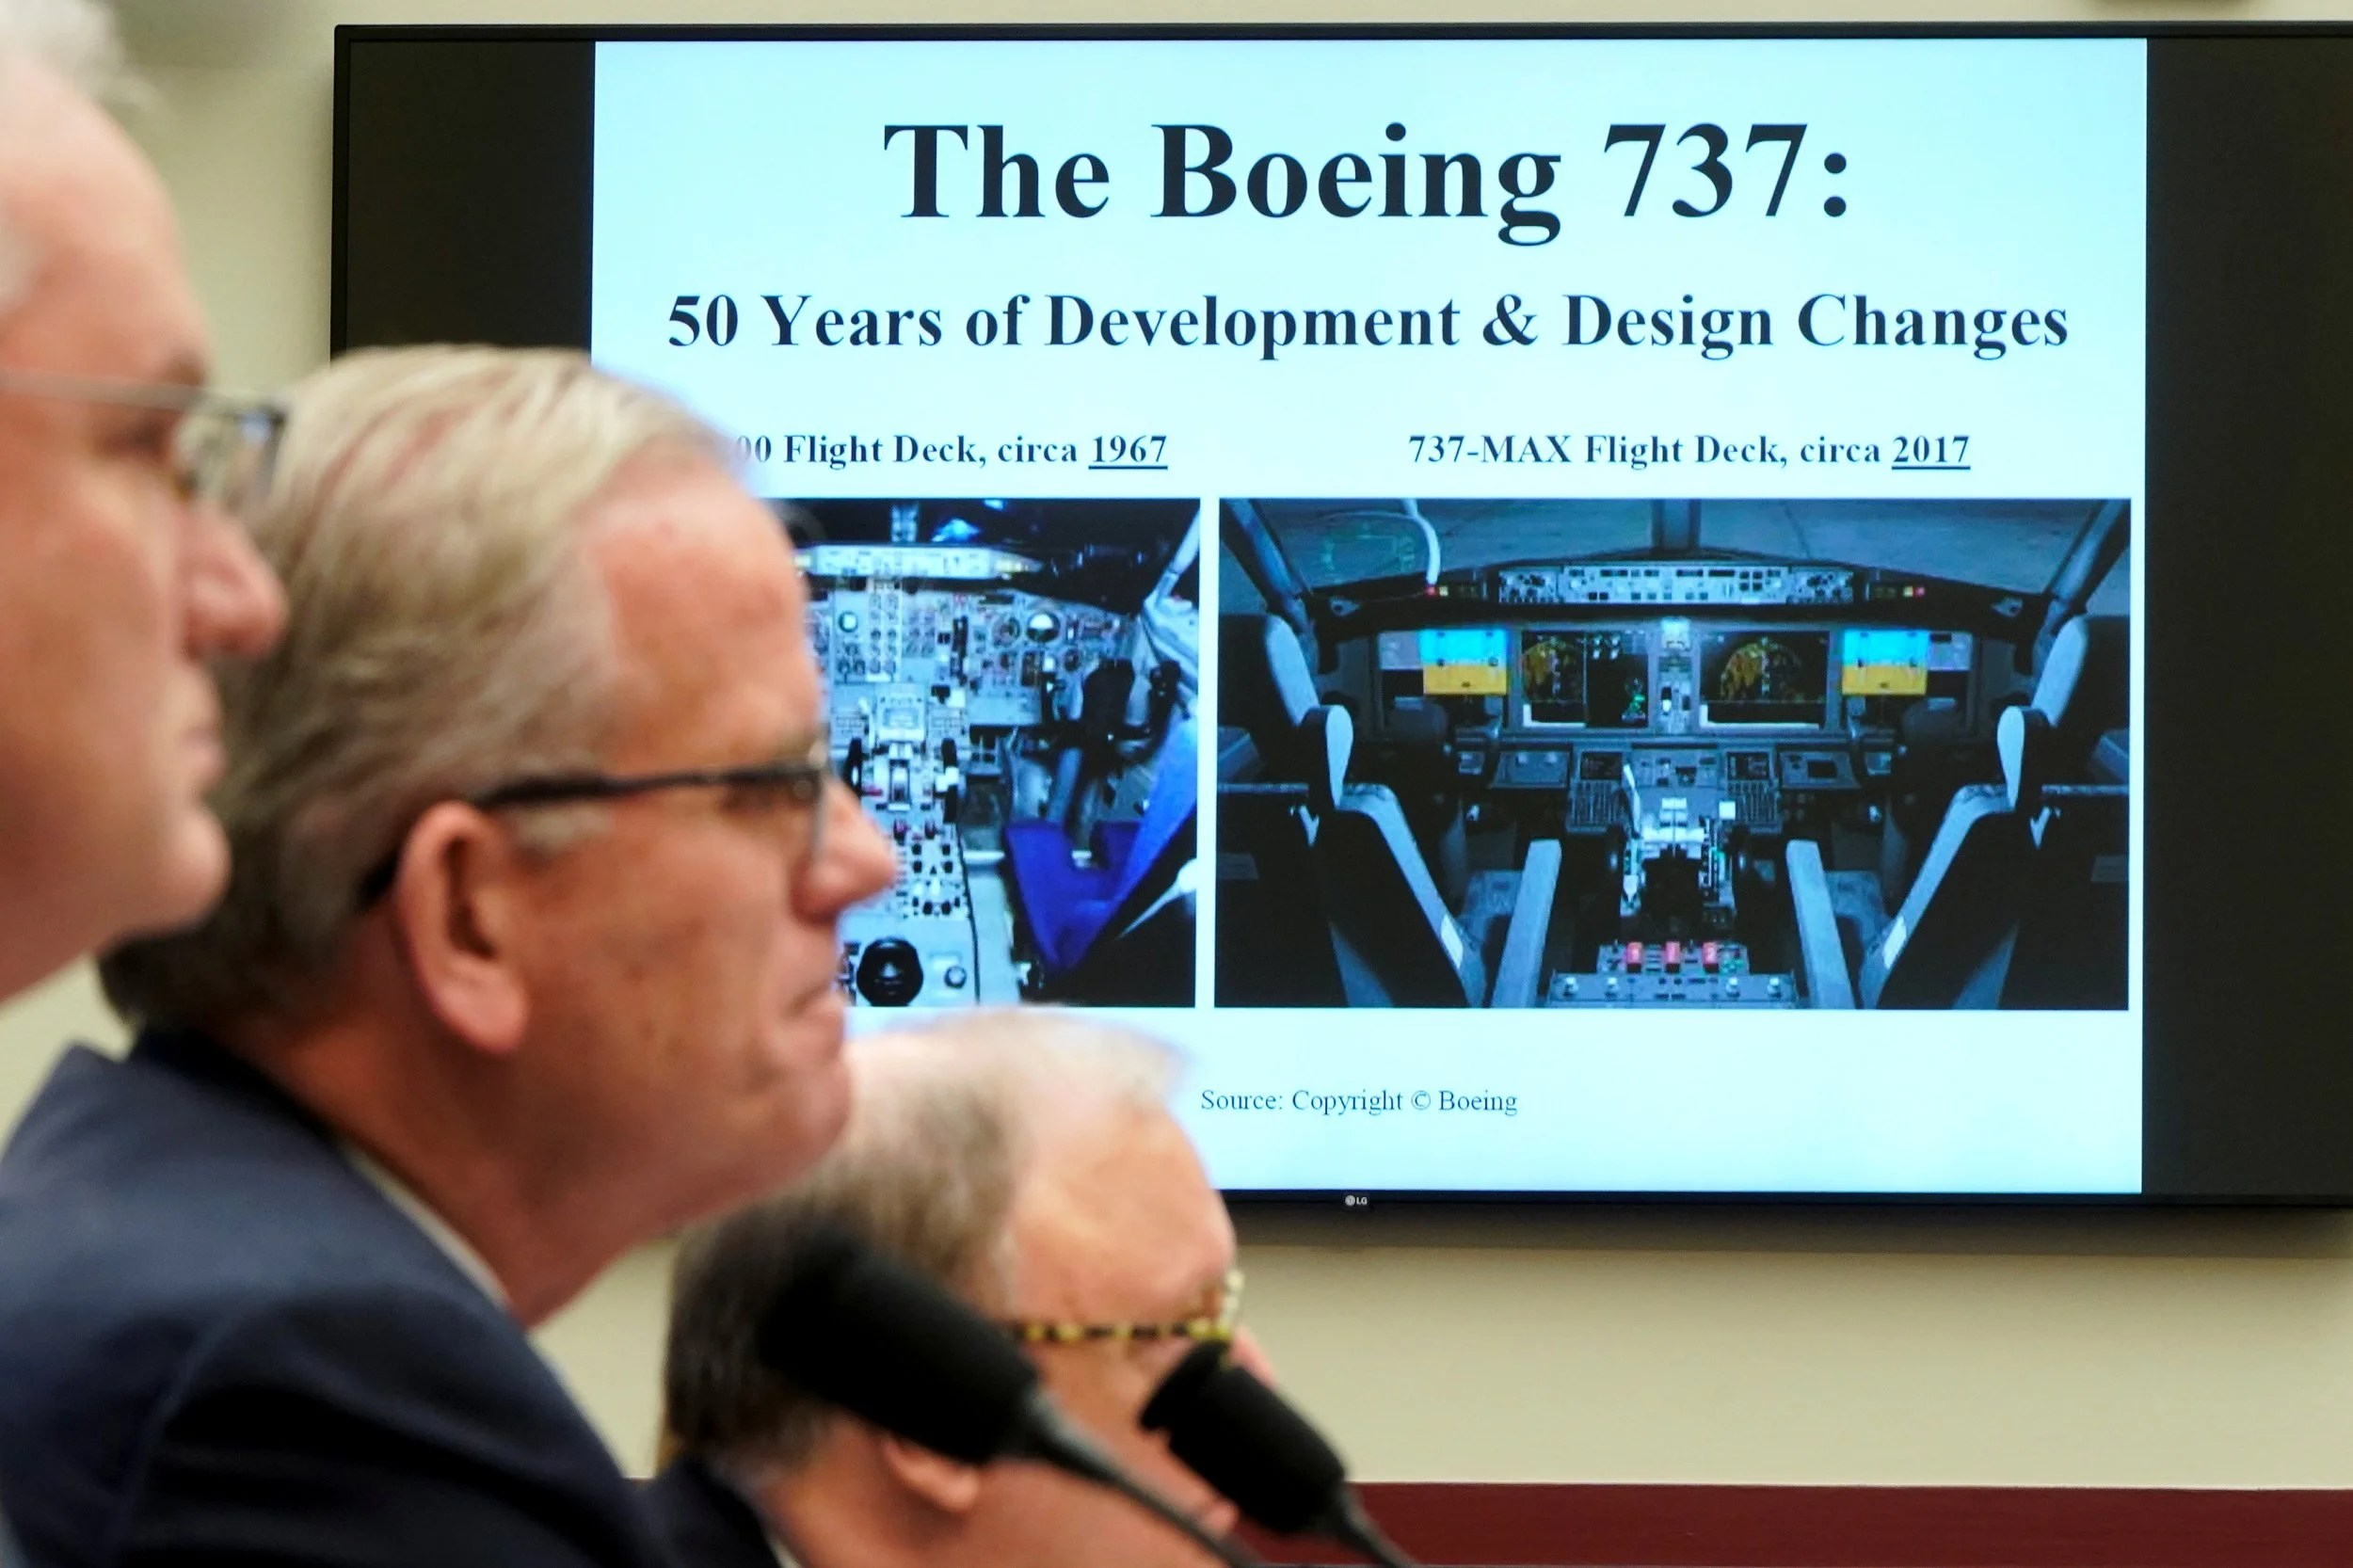 boeing1505 US regulator says Boeing 737 Max plane will only fly again when safety is assured following two deadly crashes